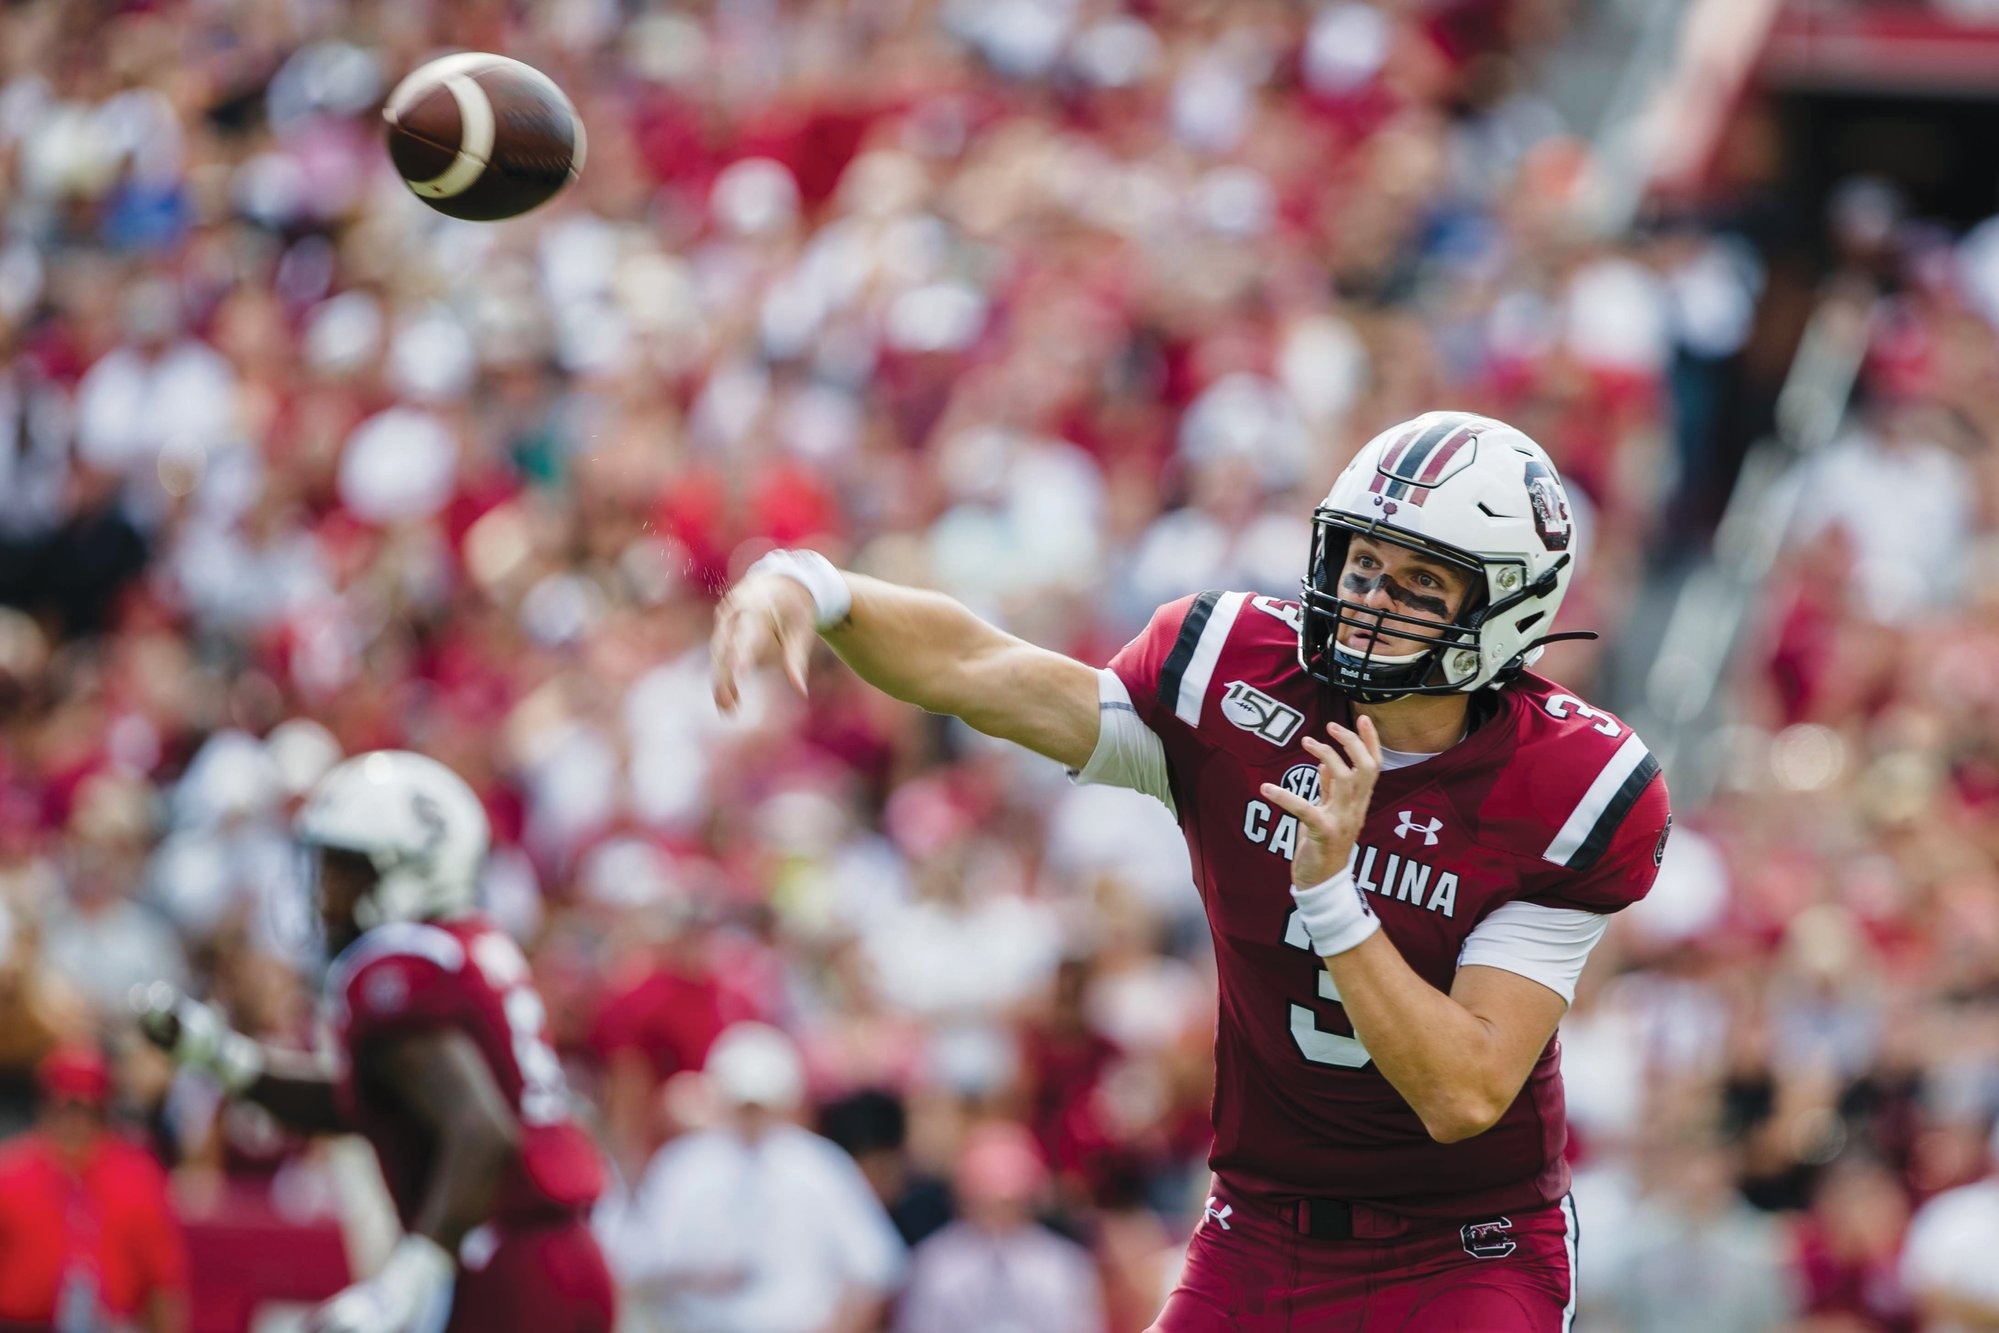 Now that the Southeastern Conference has announced its plans for the season, the question becomes will the season be worth it for SEC schools like South Carolina and its quarterback, Ryan Hilinksi.